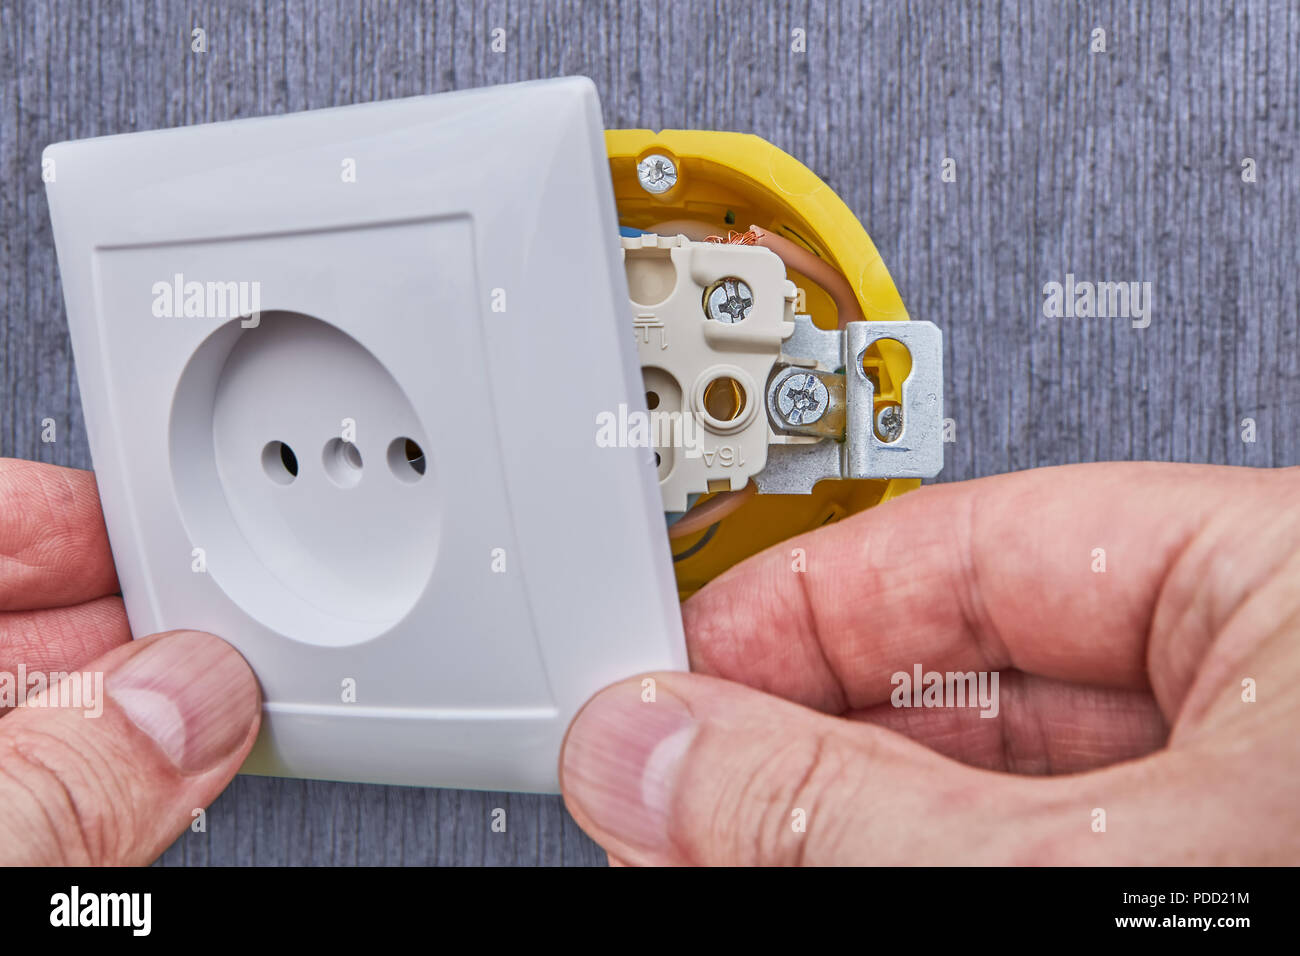 Installing Household Power Outlet In Home Electrical Network Close House Wiring On The As Up